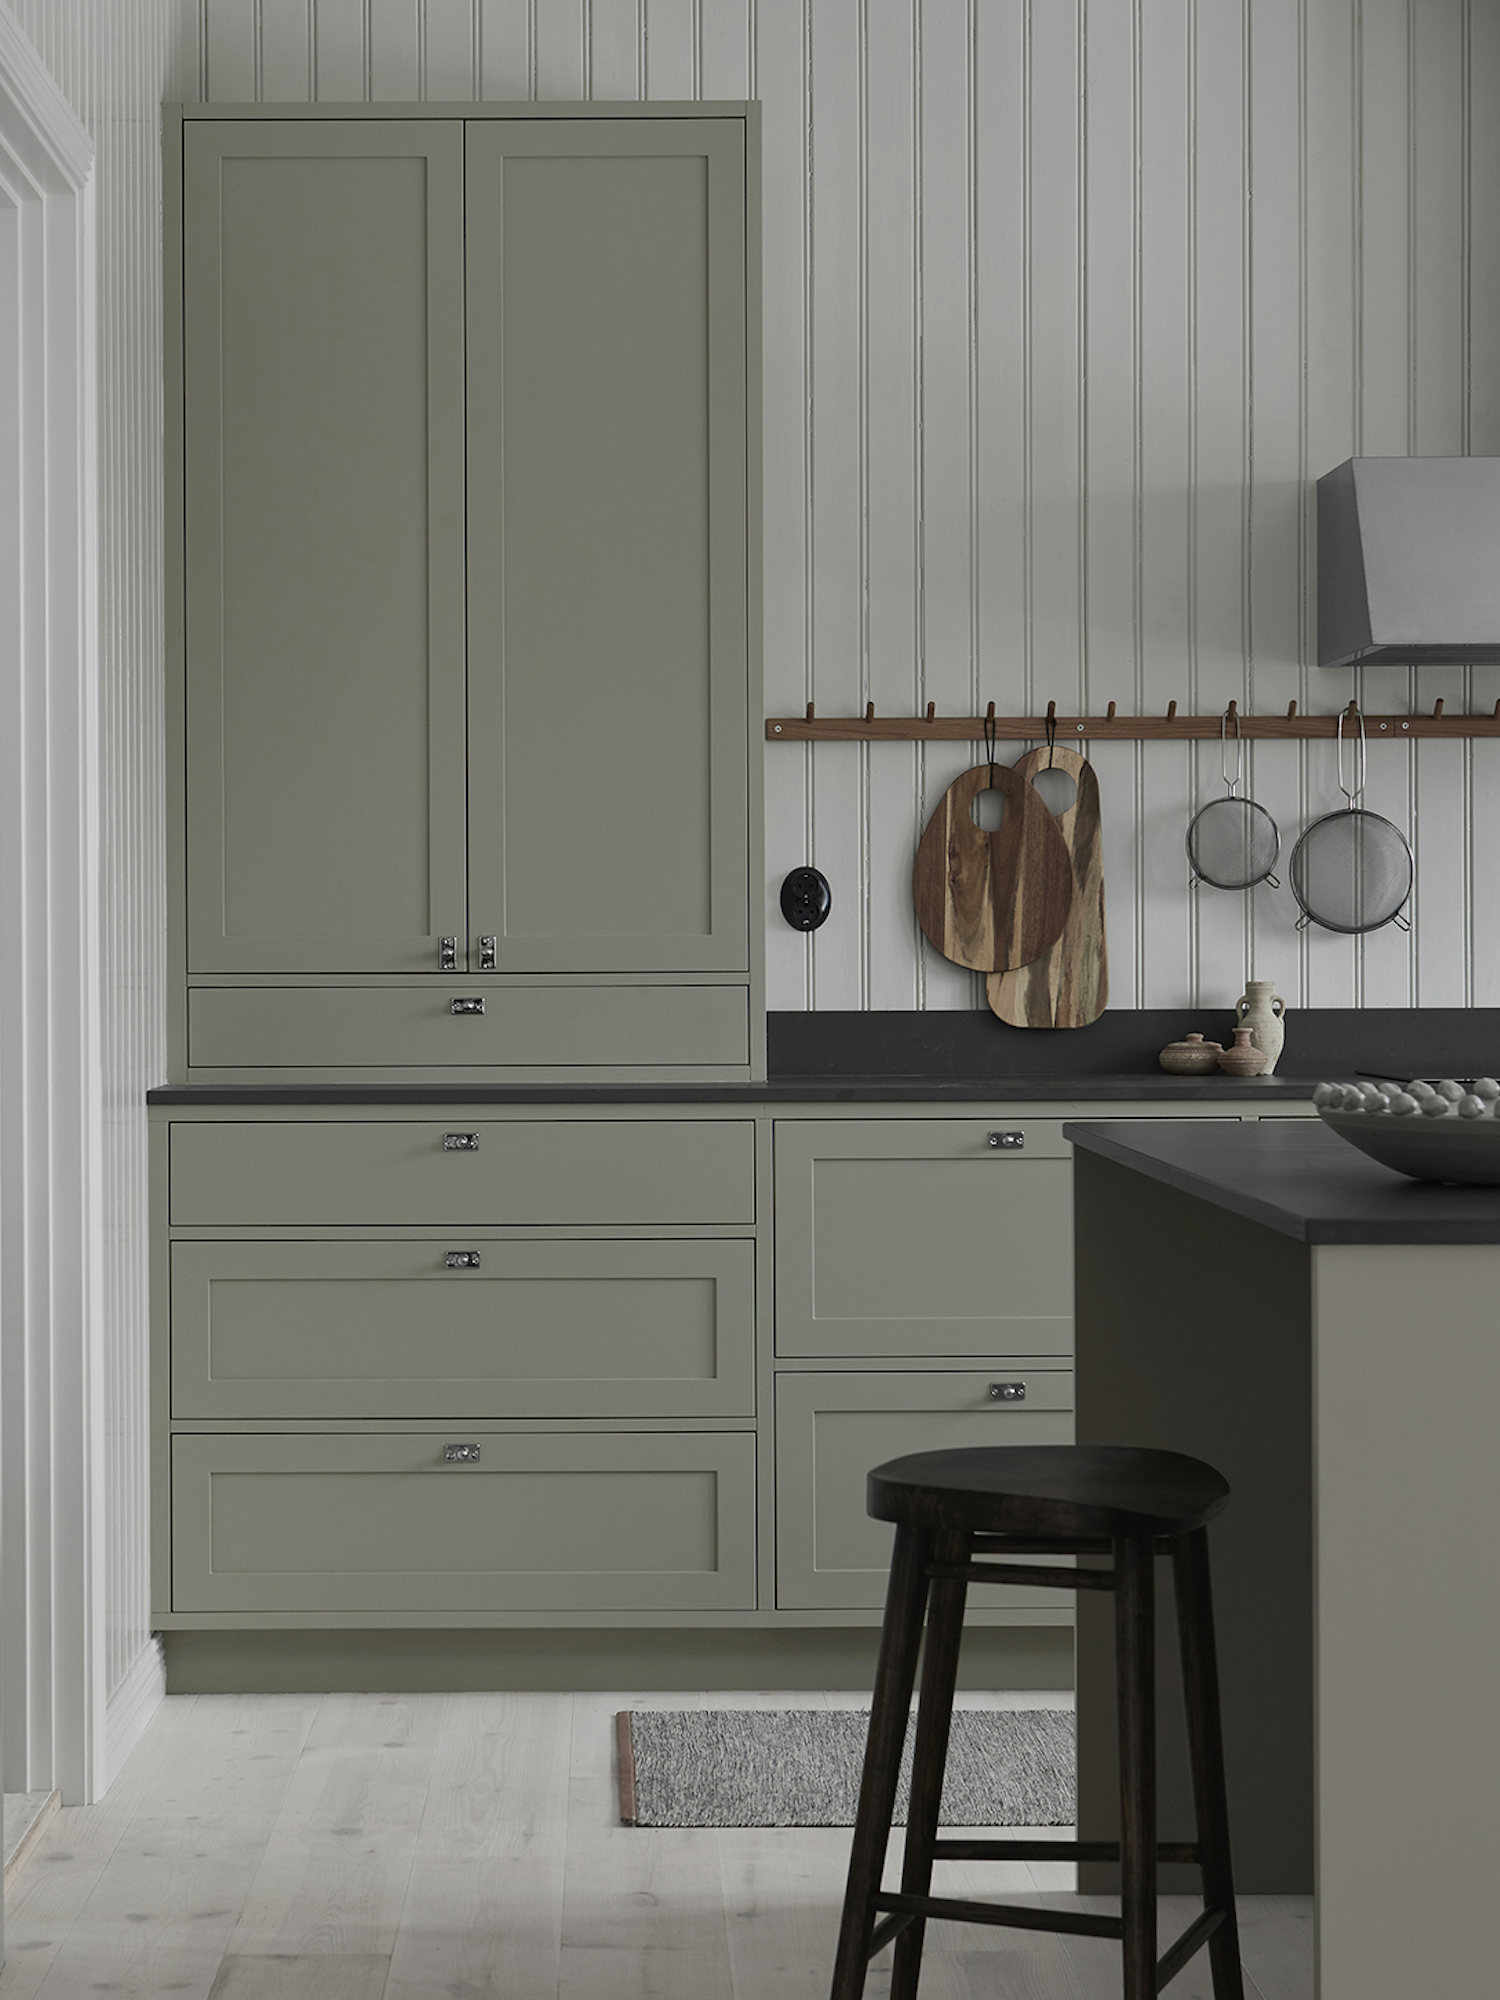 Designing a Nordic Style Kitchen